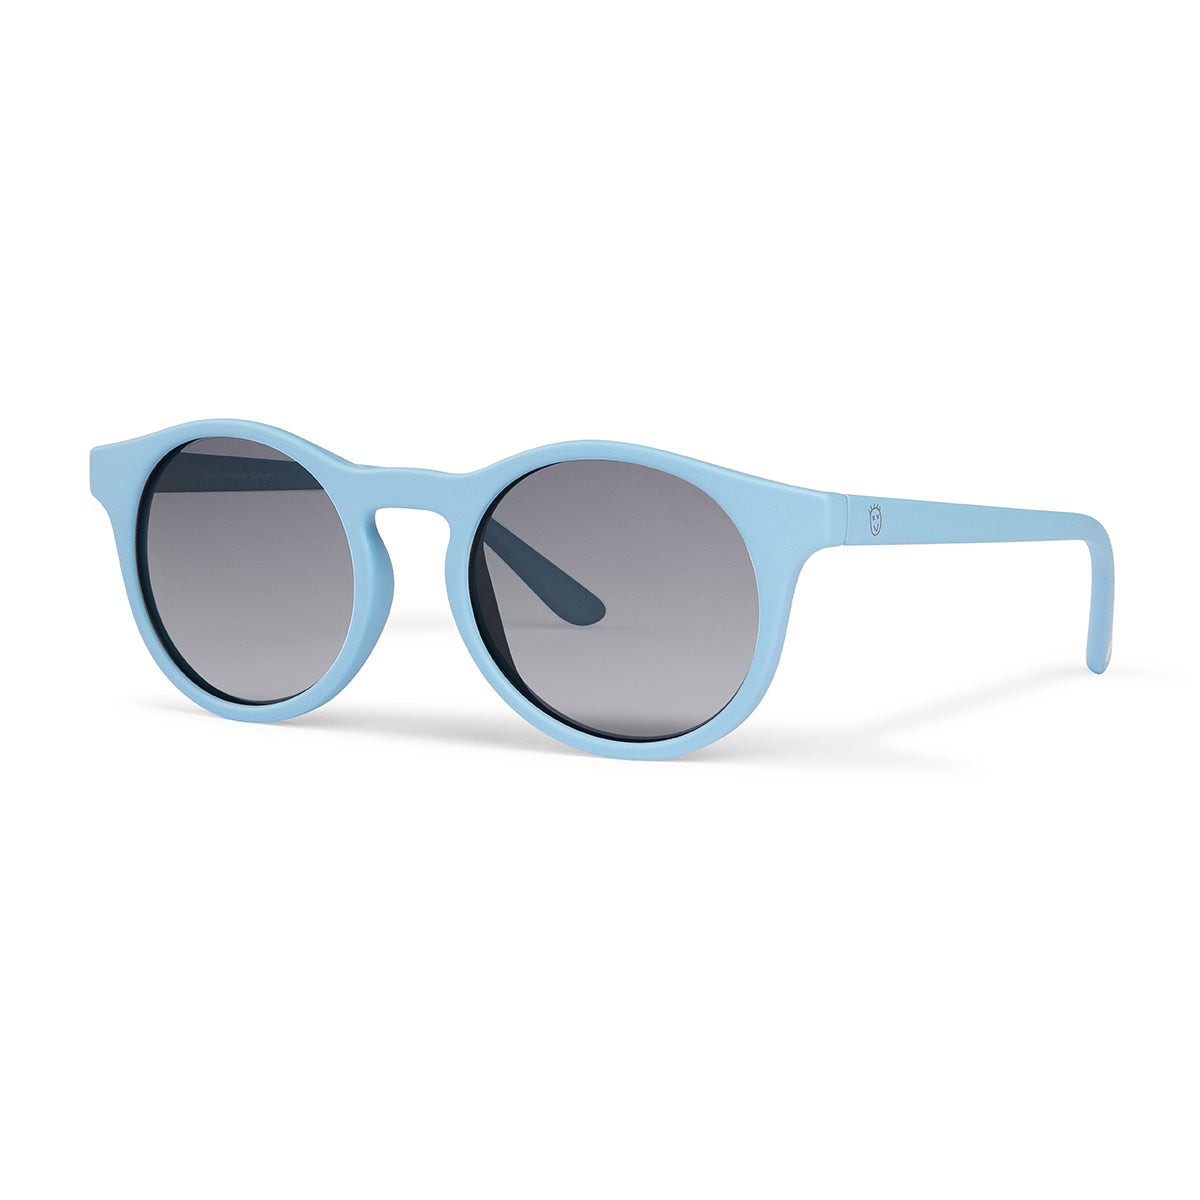 Goose & Dust sustainable sunglasses - bluebird matte